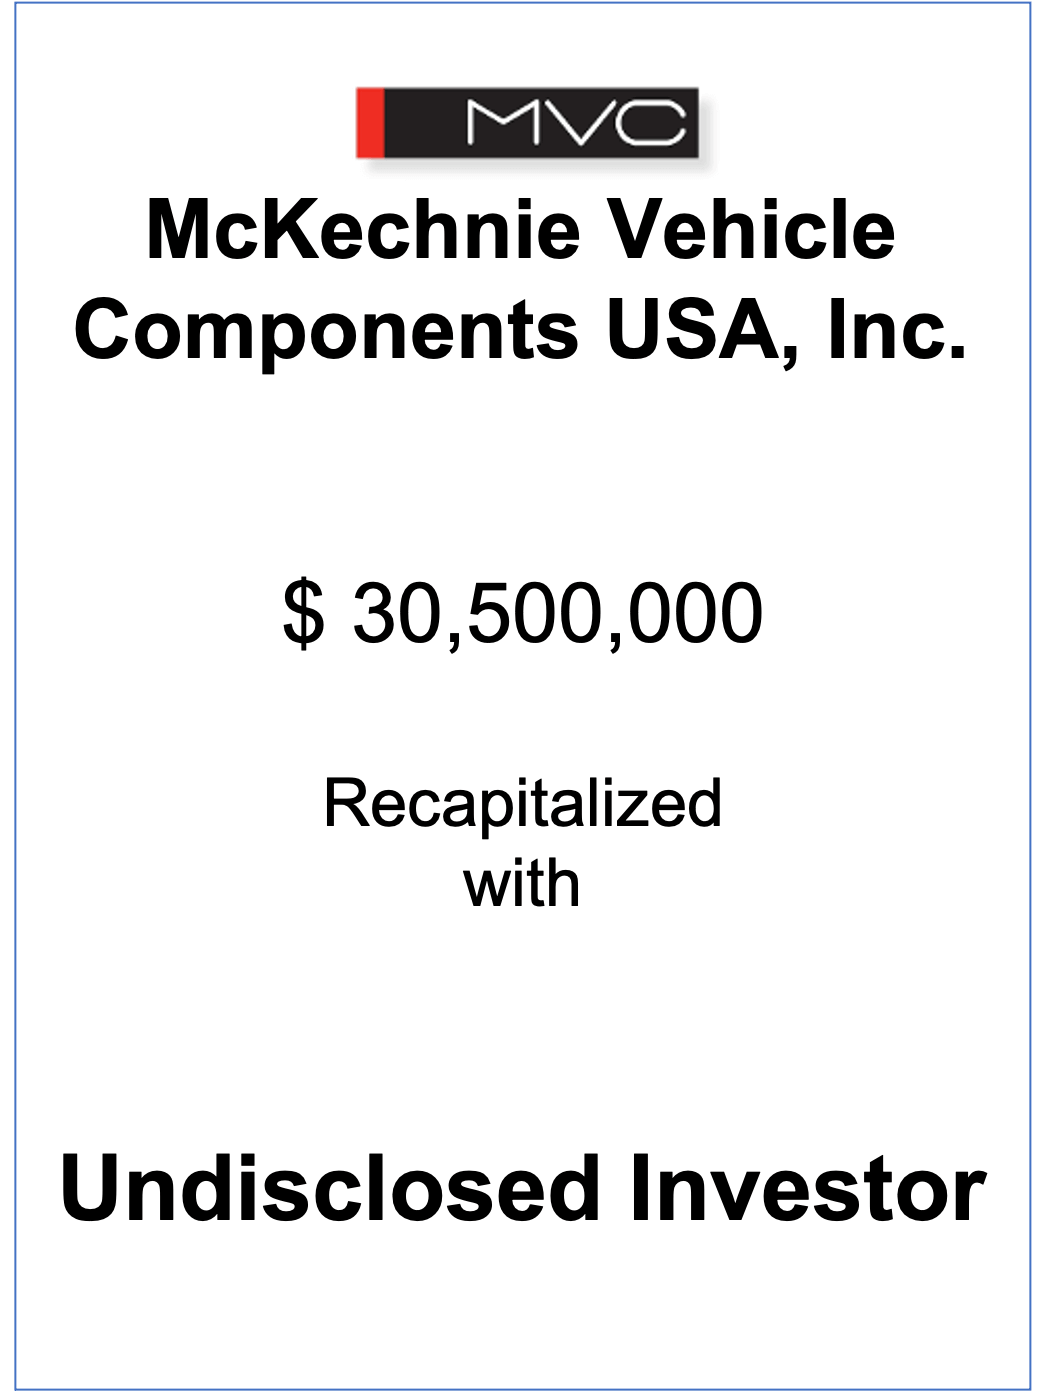 NorthView advises on the recapitalization of McKechnie Vehicle Components USA, Inc.